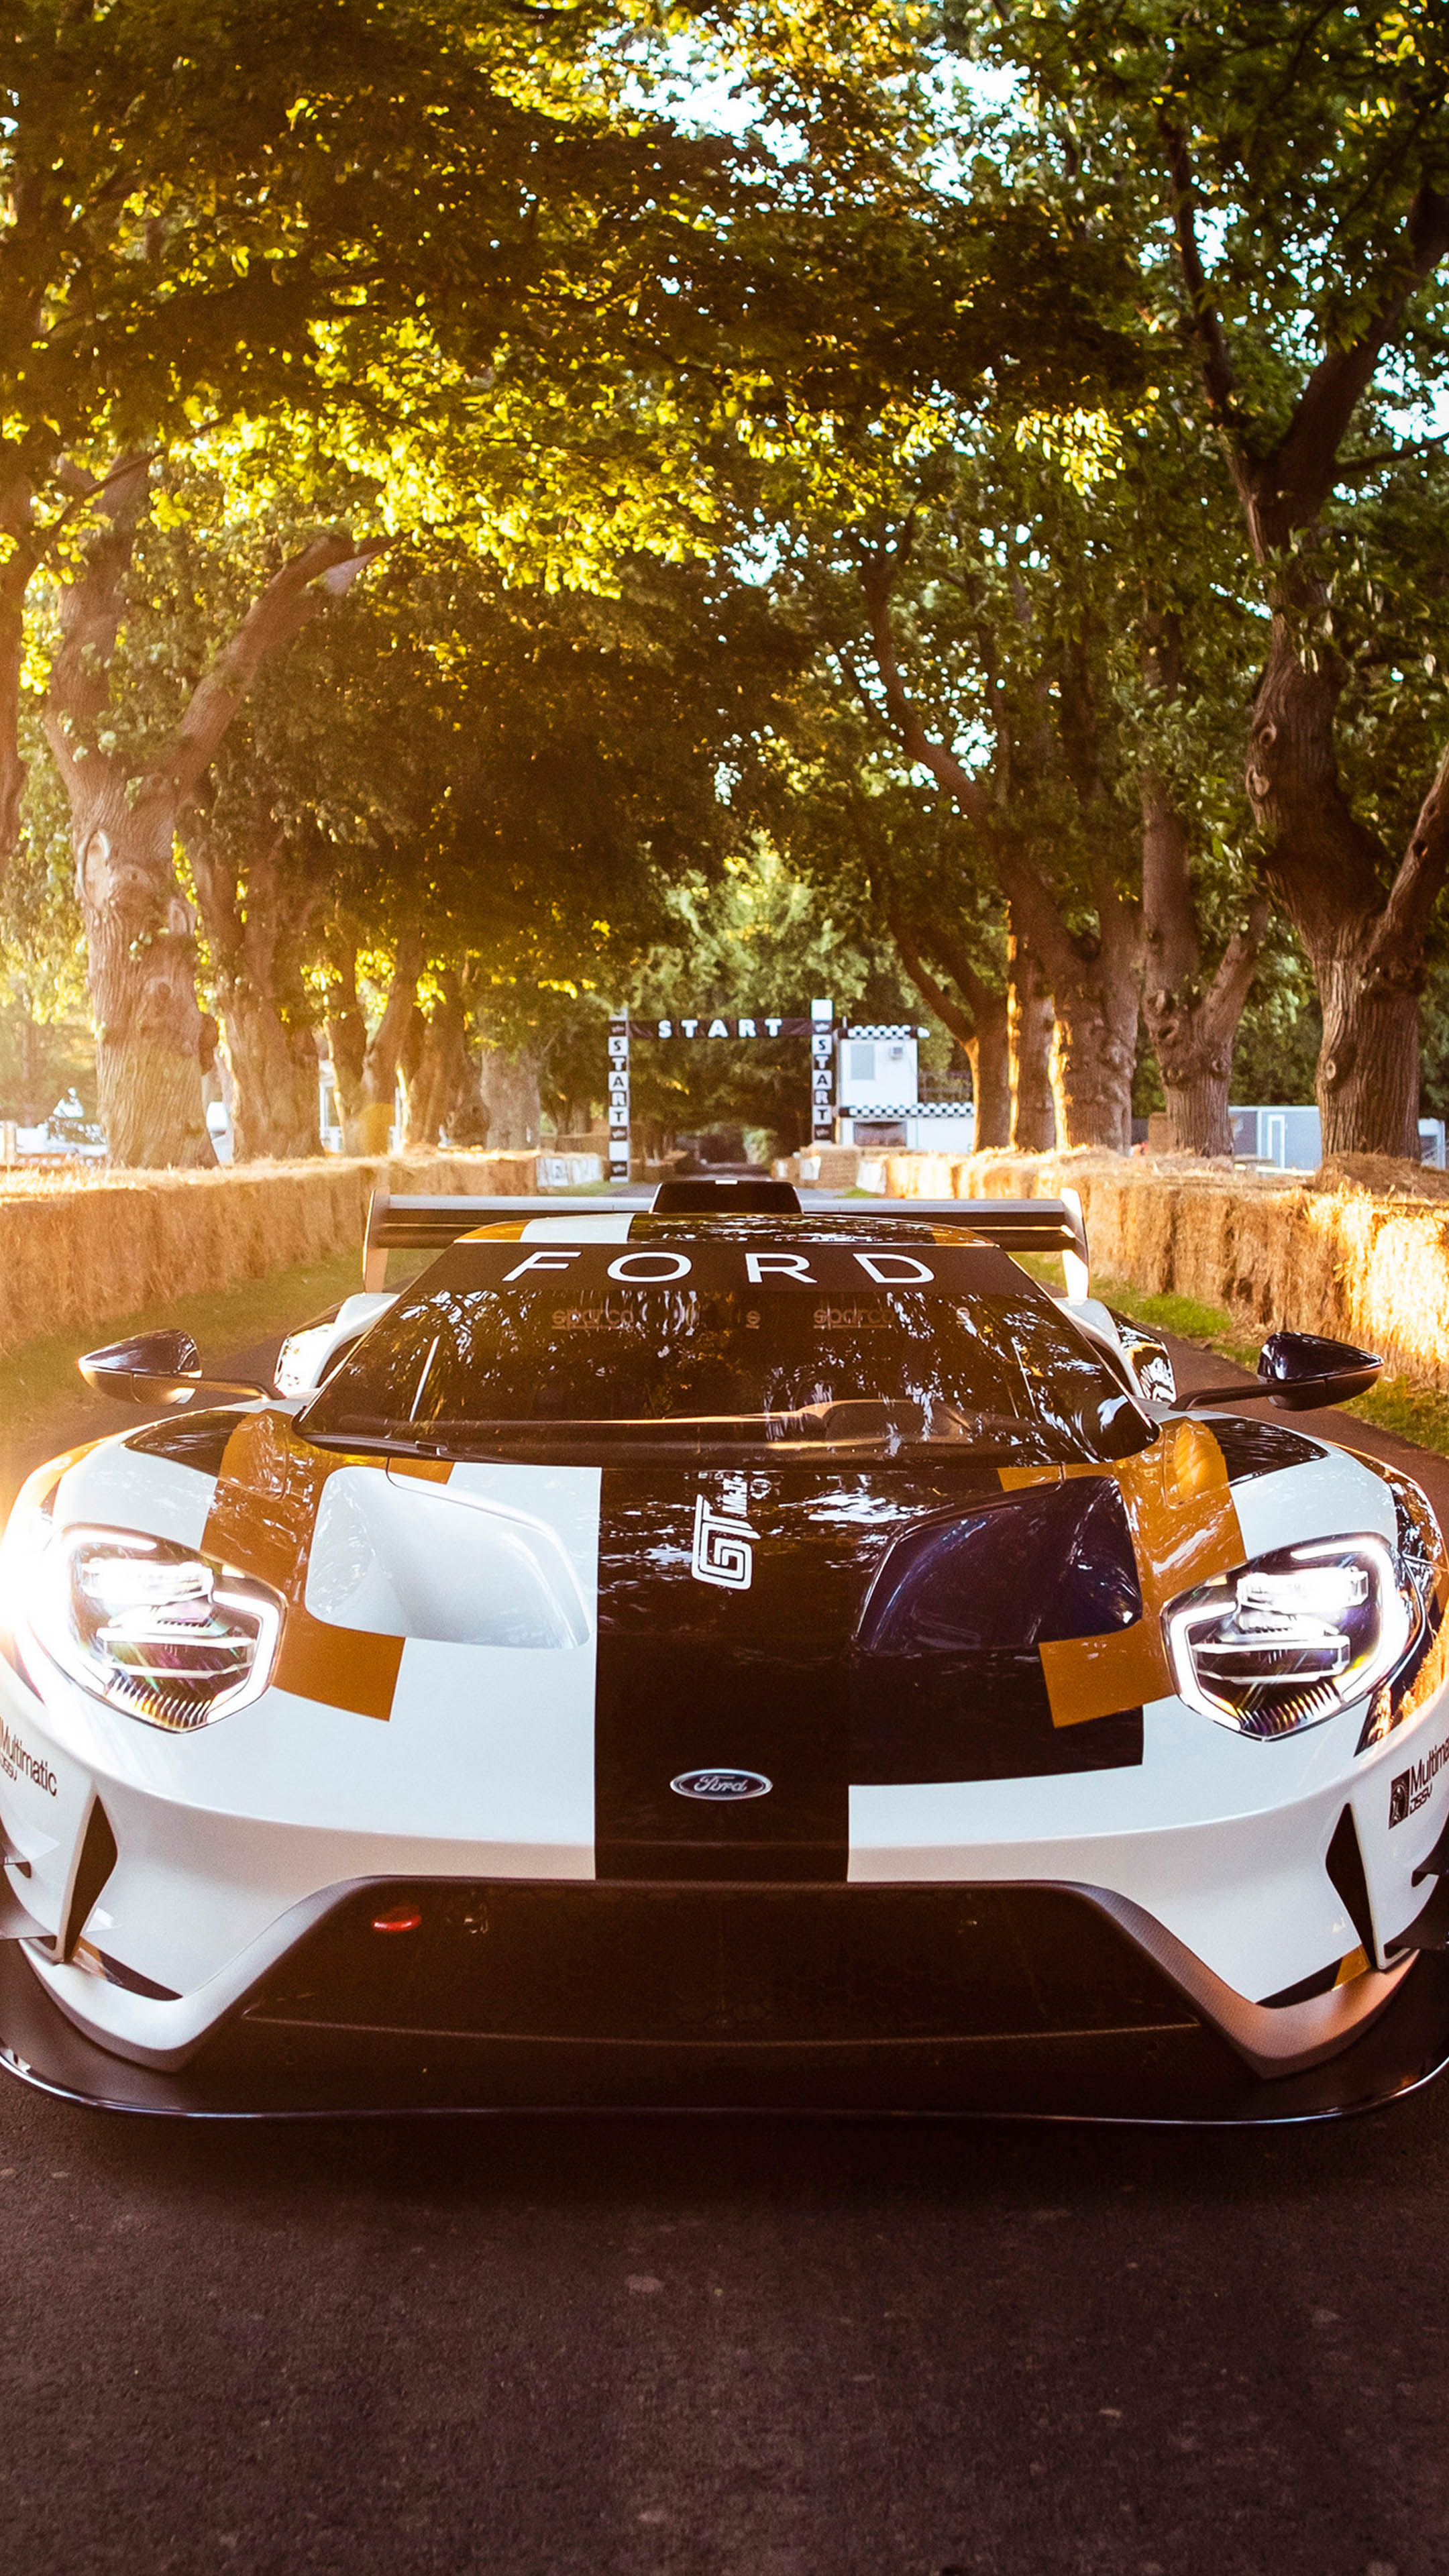 Download Ford GT MK II 2019 Pure 4K Ultra HD Mobile Wallpaper 2160x3840